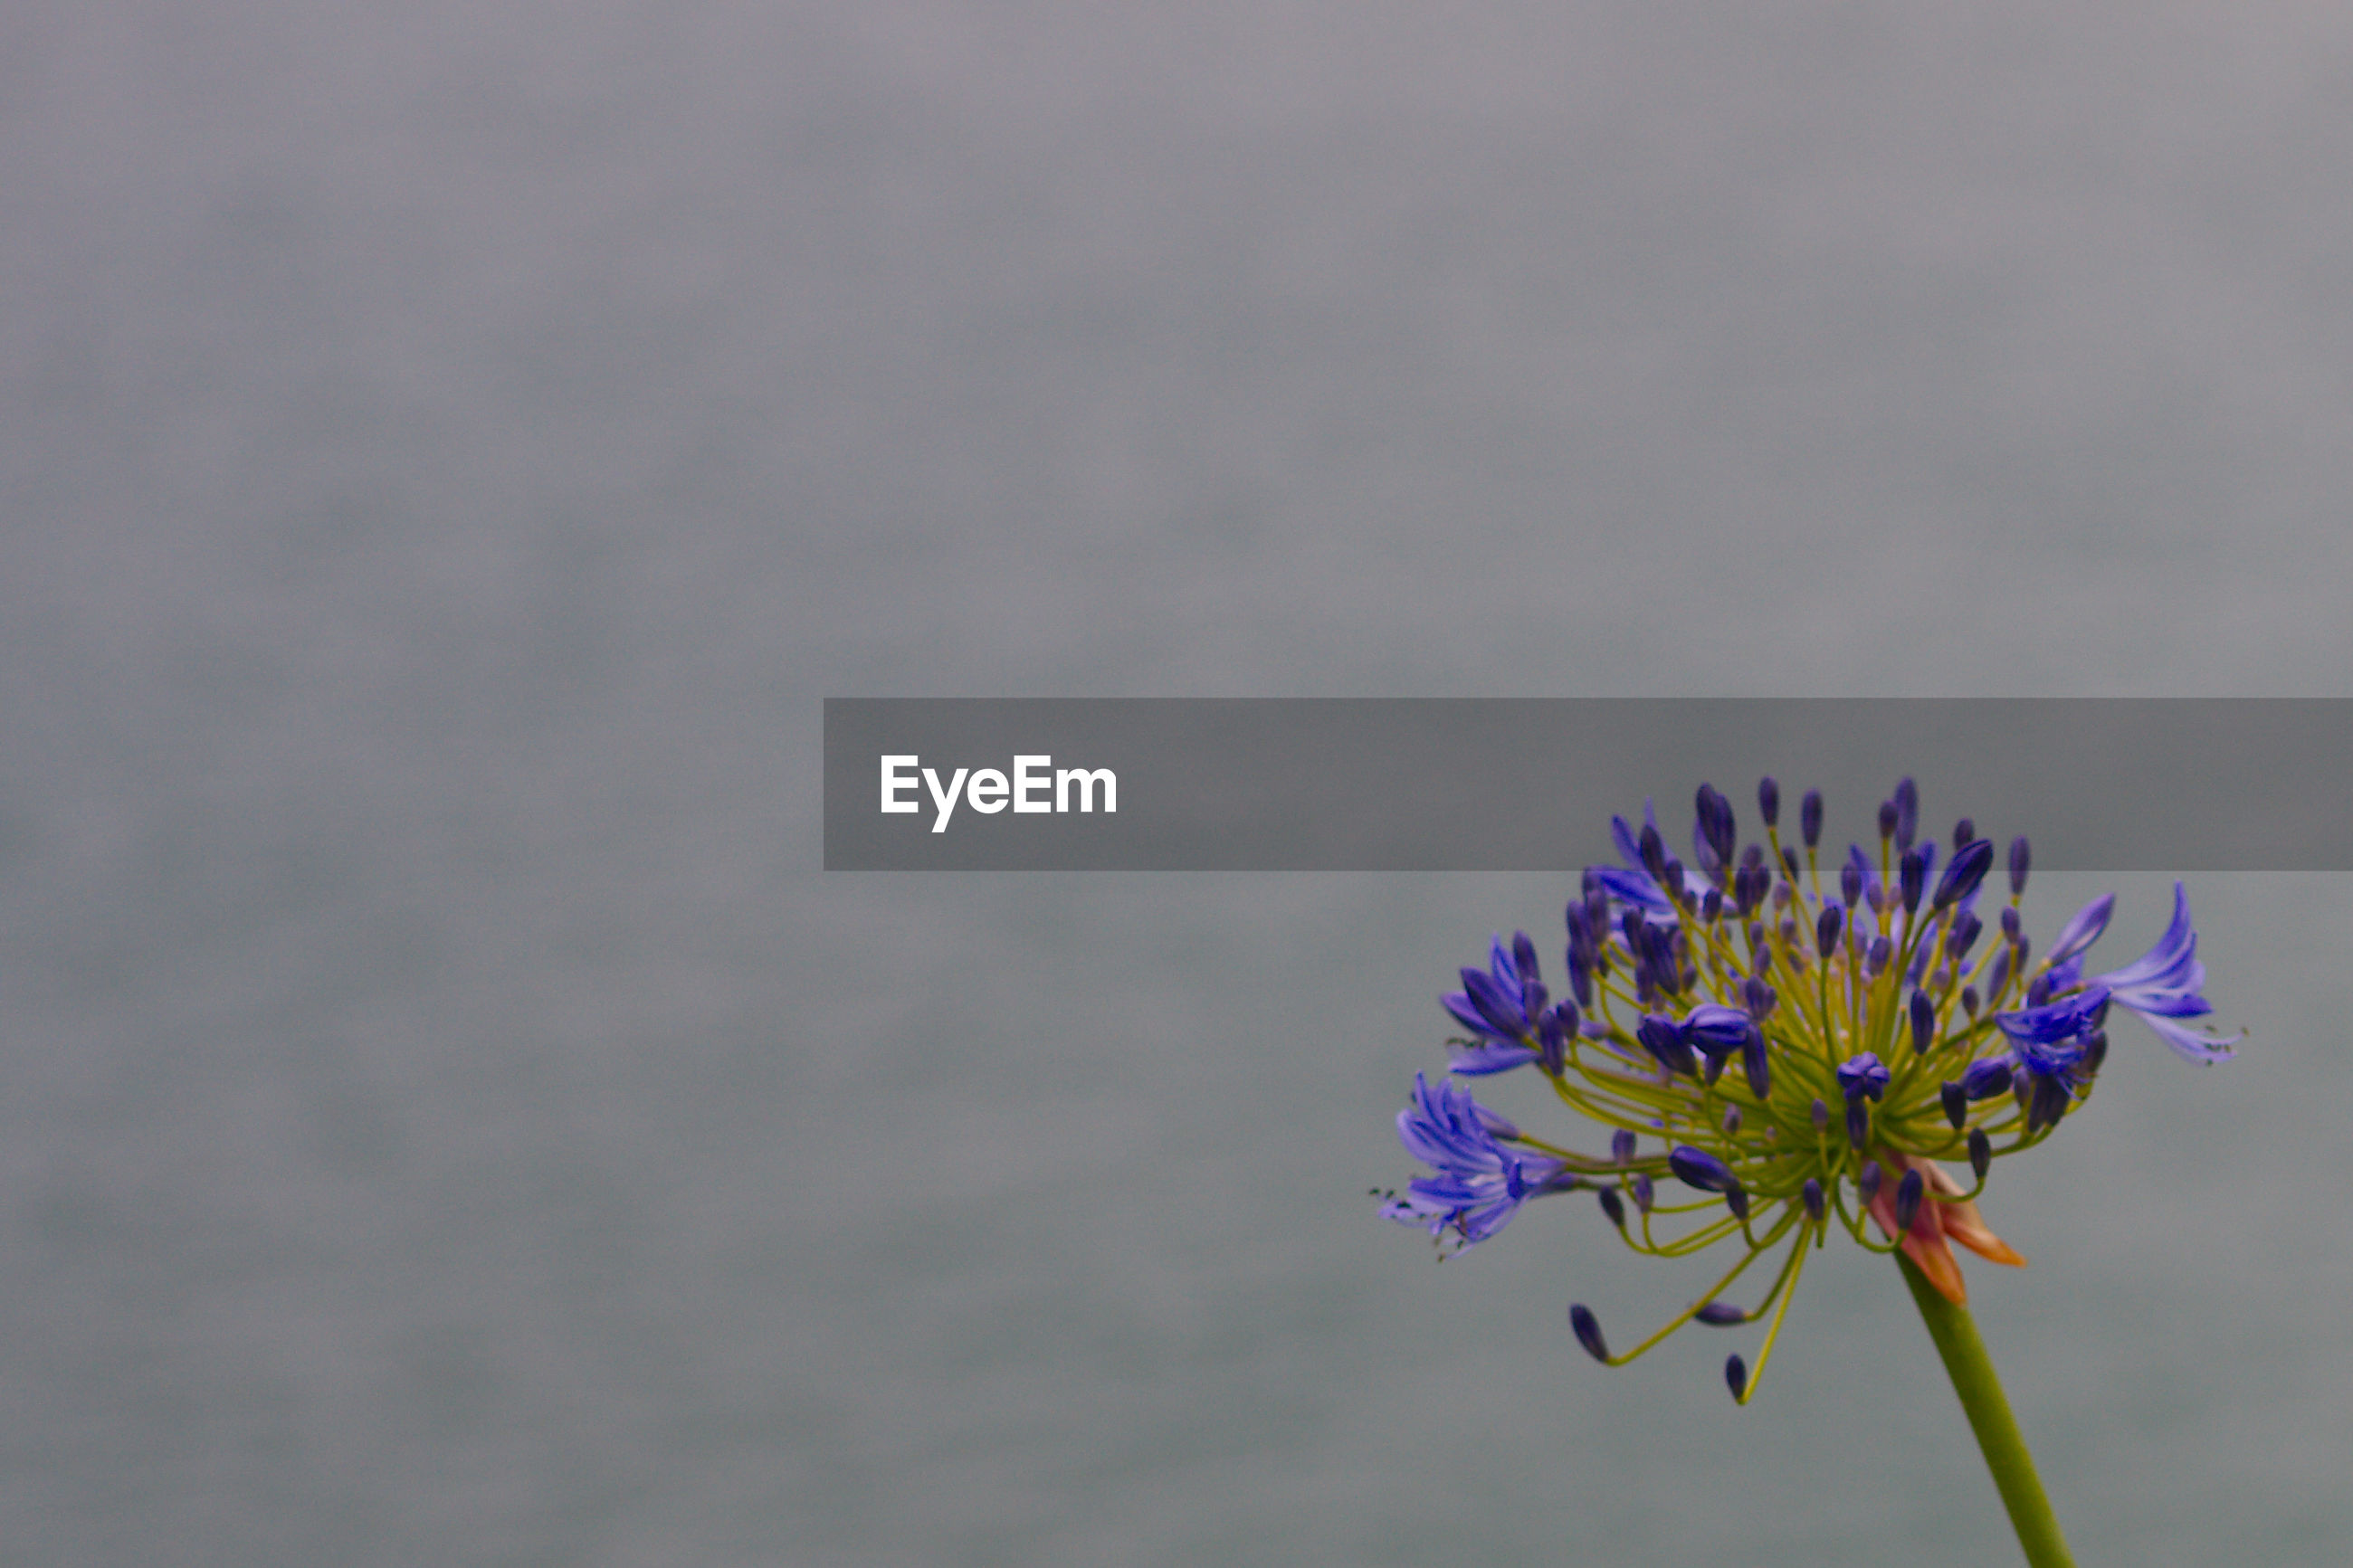 CLOSE-UP OF PURPLE FLOWER BLOOMING AGAINST BLURRED BACKGROUND